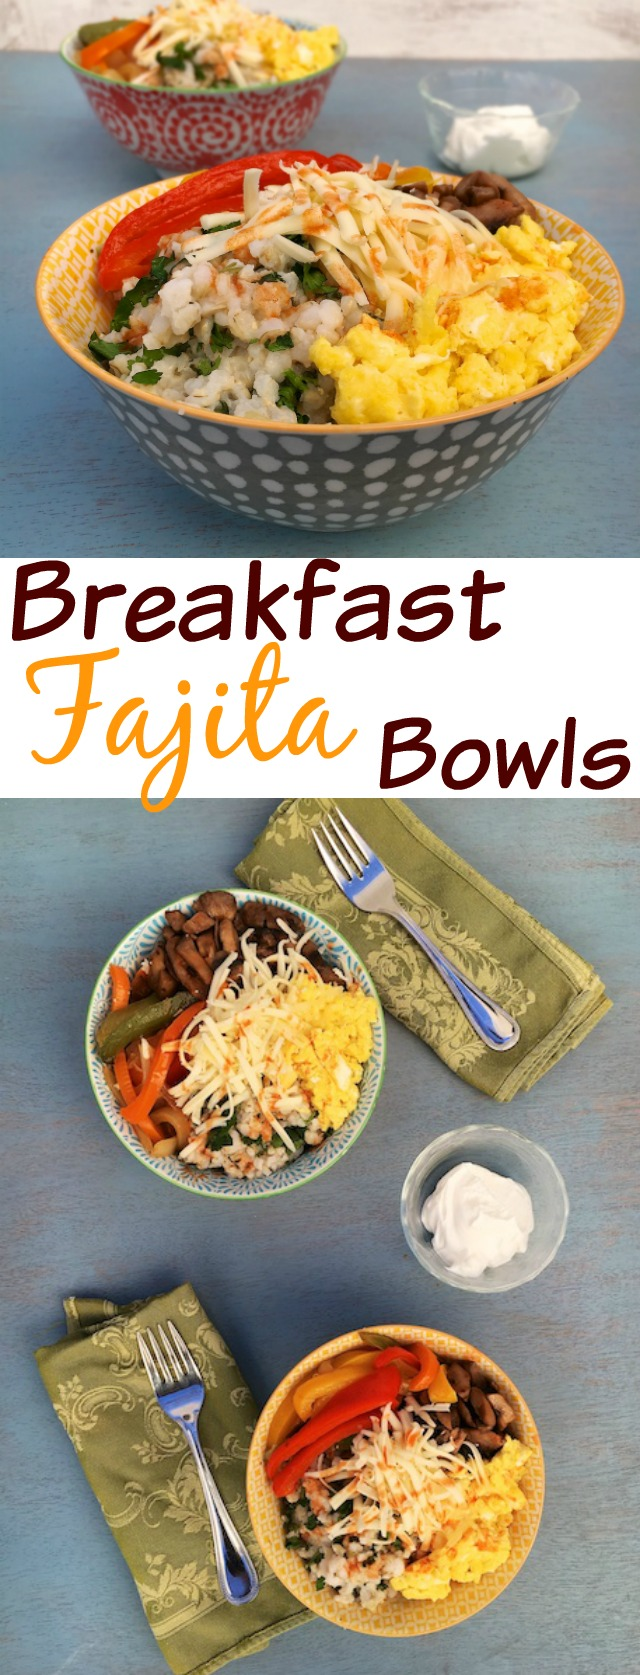 Wake up your morning routine with a protein-packed Breakfast Fajita Bowl featuring Real California milk products #sponsored @tspbasil